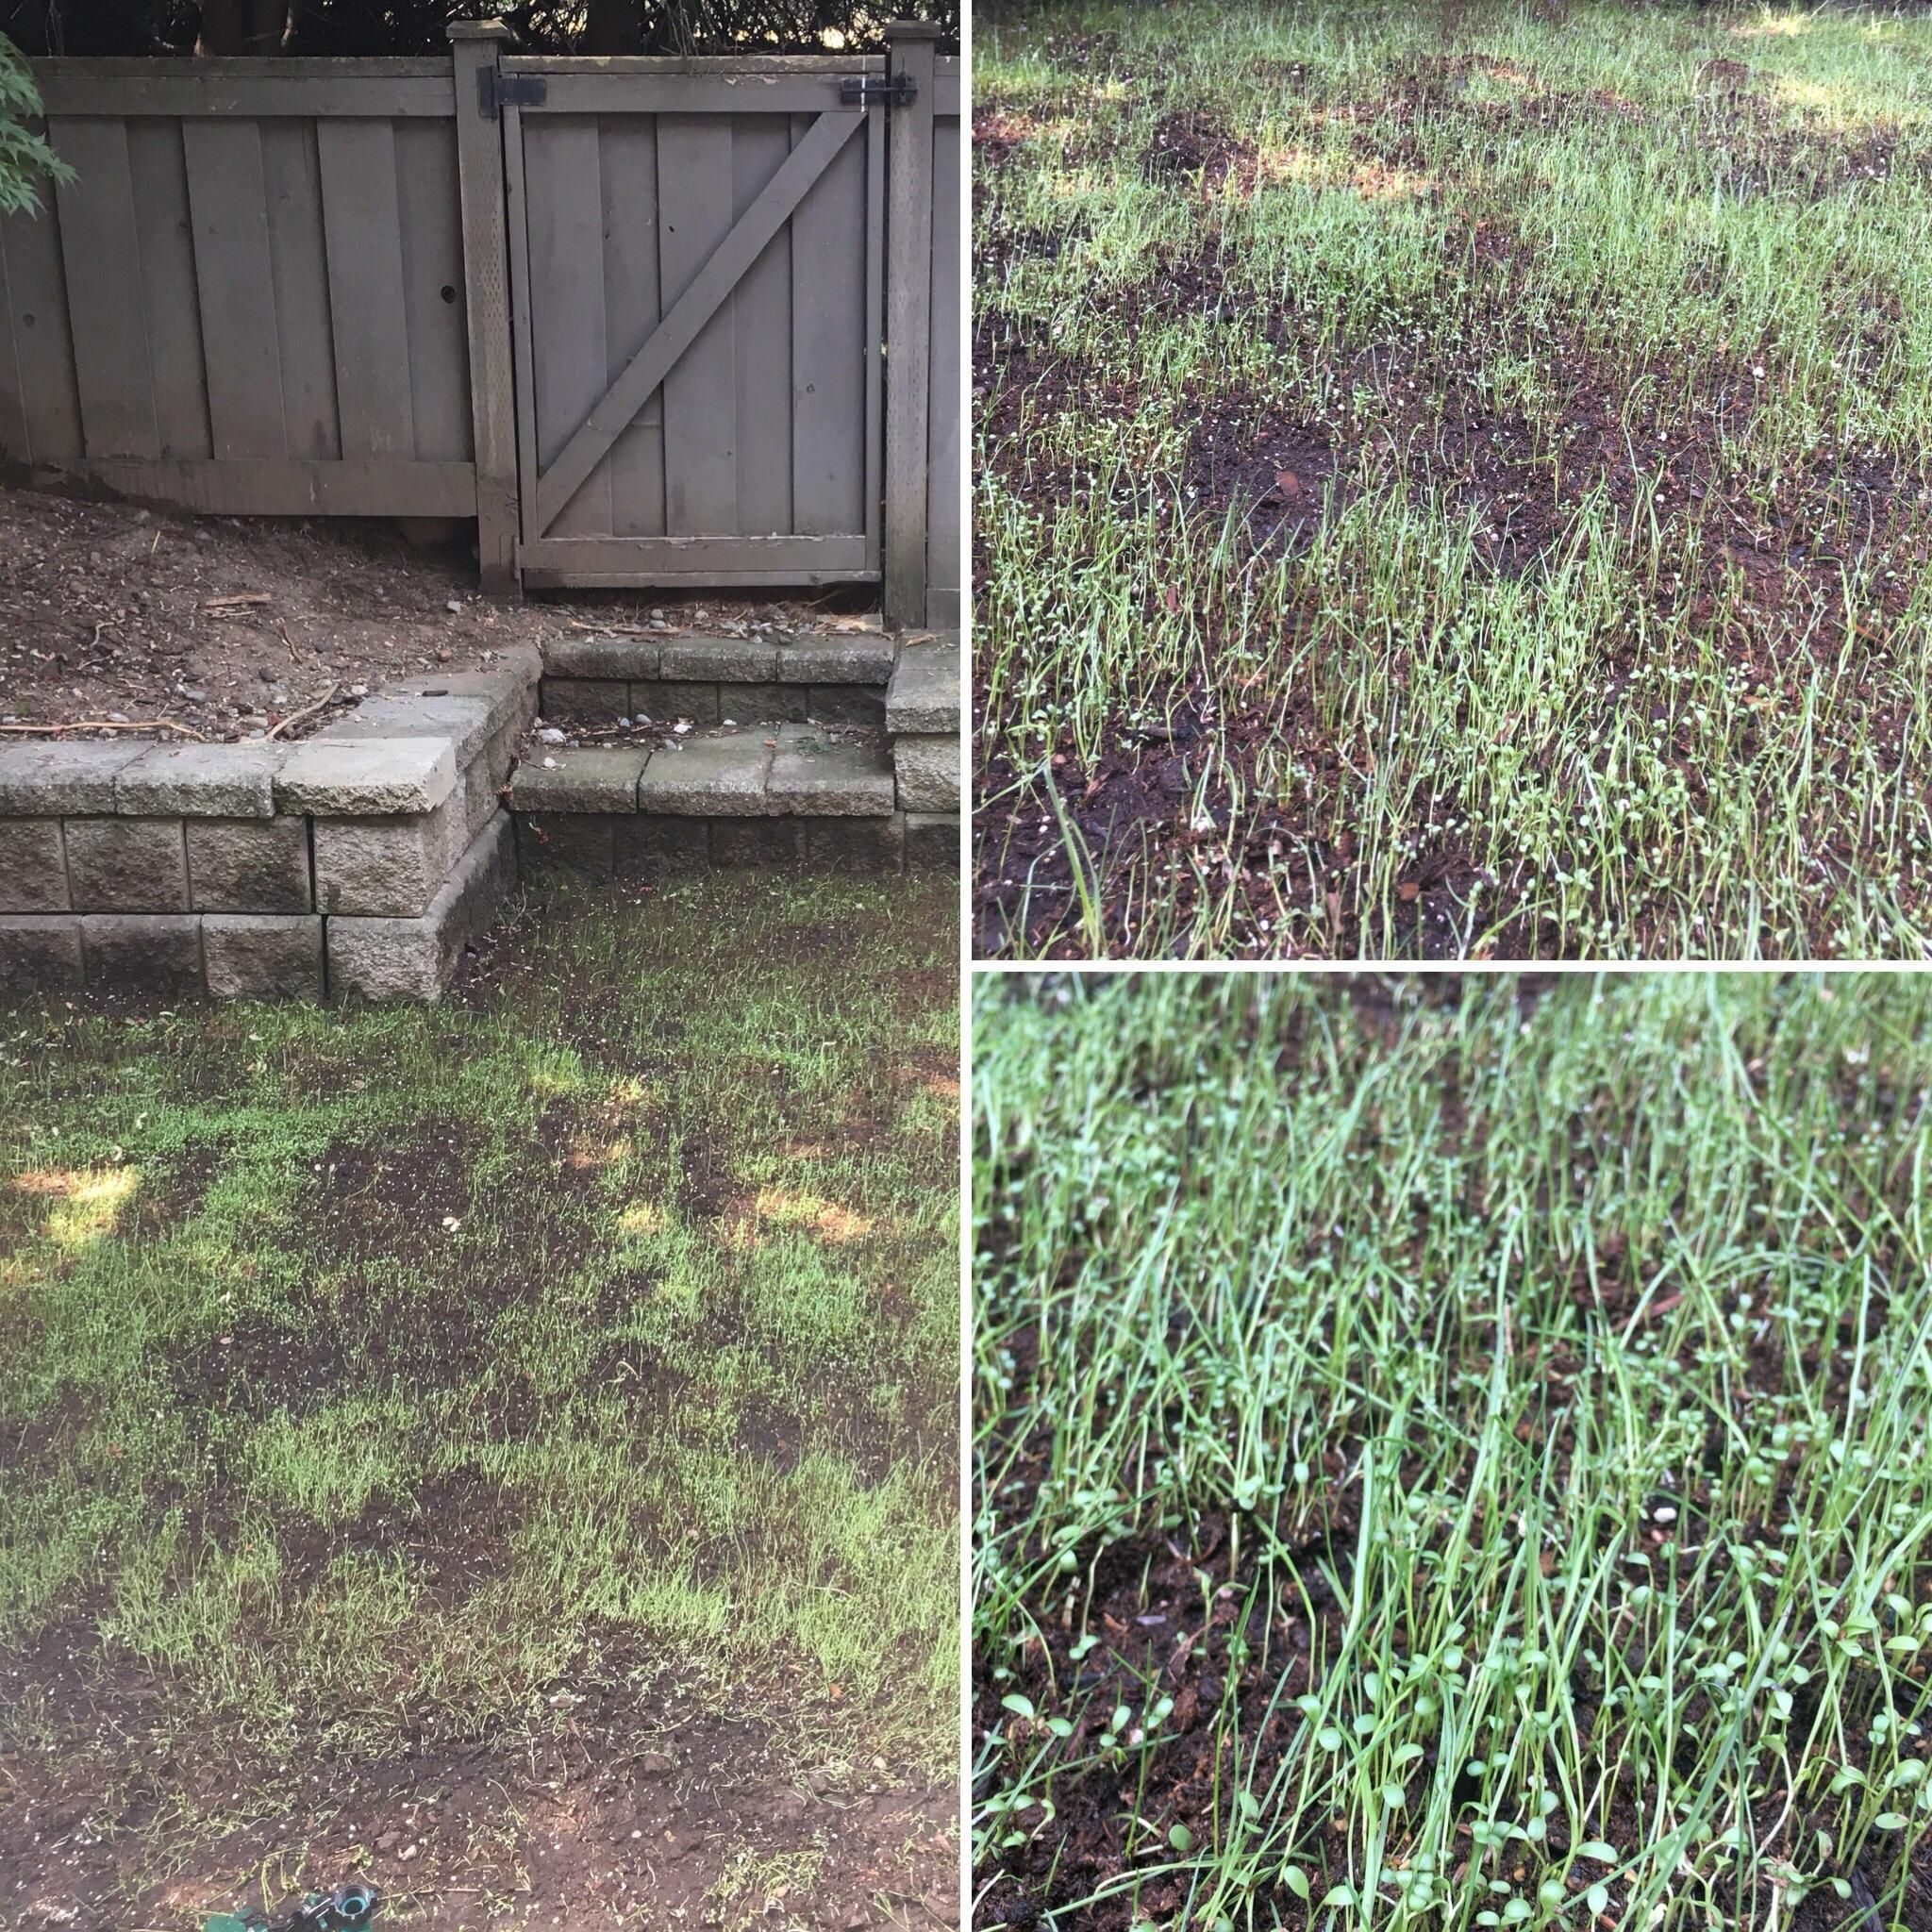 New Patchy Lawn Last Year I Tried Just Grass And It Never Filled In This Year I Mixed It With Micro Clover But Its Growing In Patches Aga Peat Moss Lawn Grass